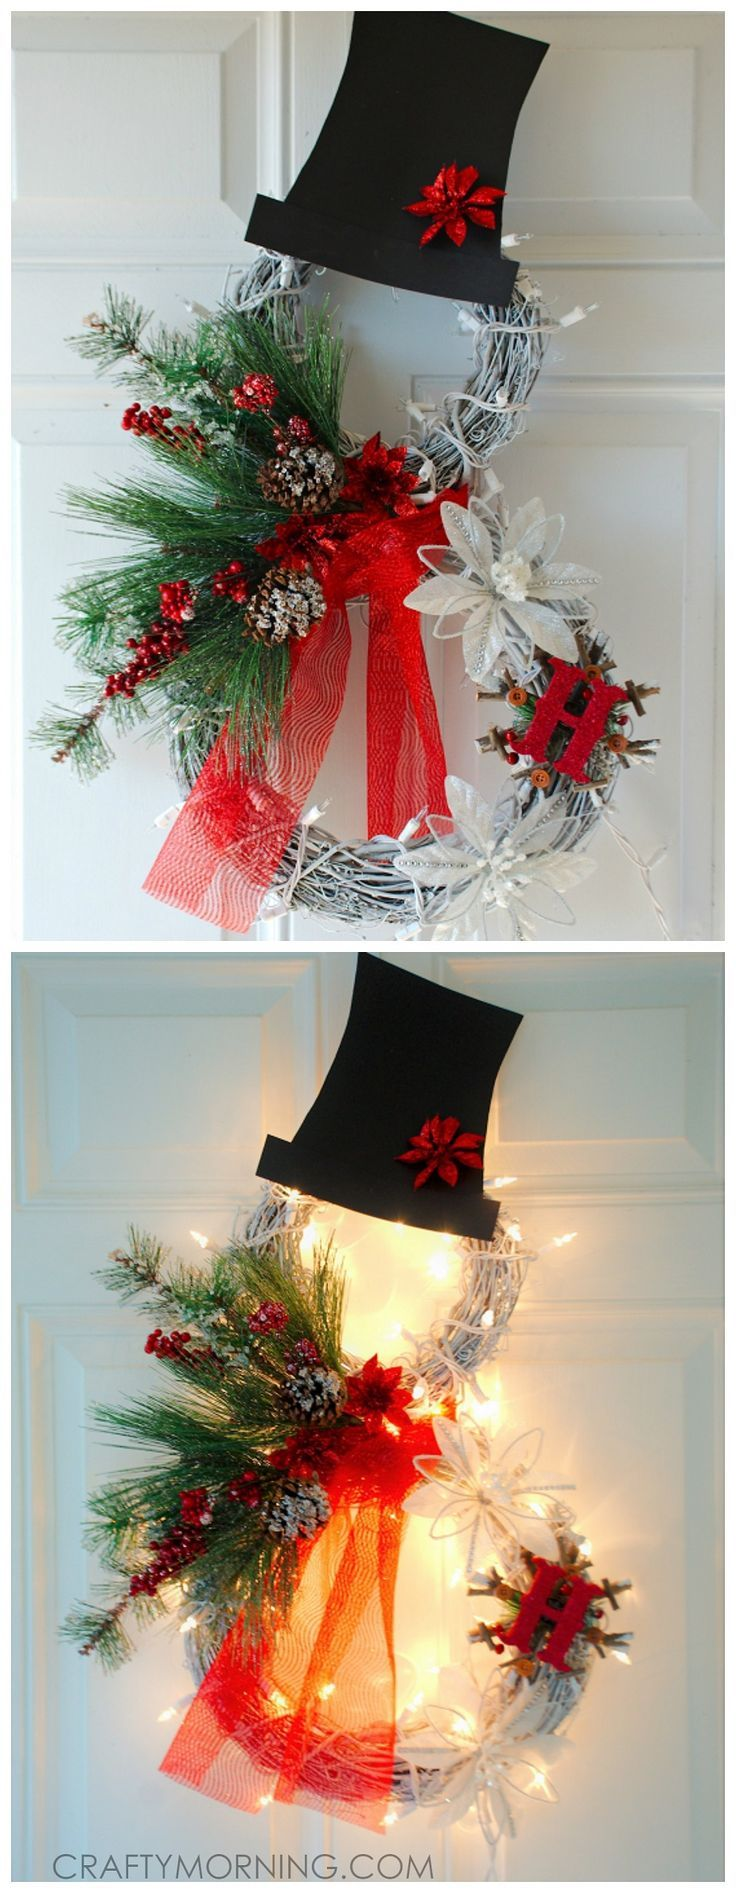 Diy christmas decorations and gifts - Beautiful Lighted Grapevine Snowman Wreath To Make For A Christmas Door Decoration